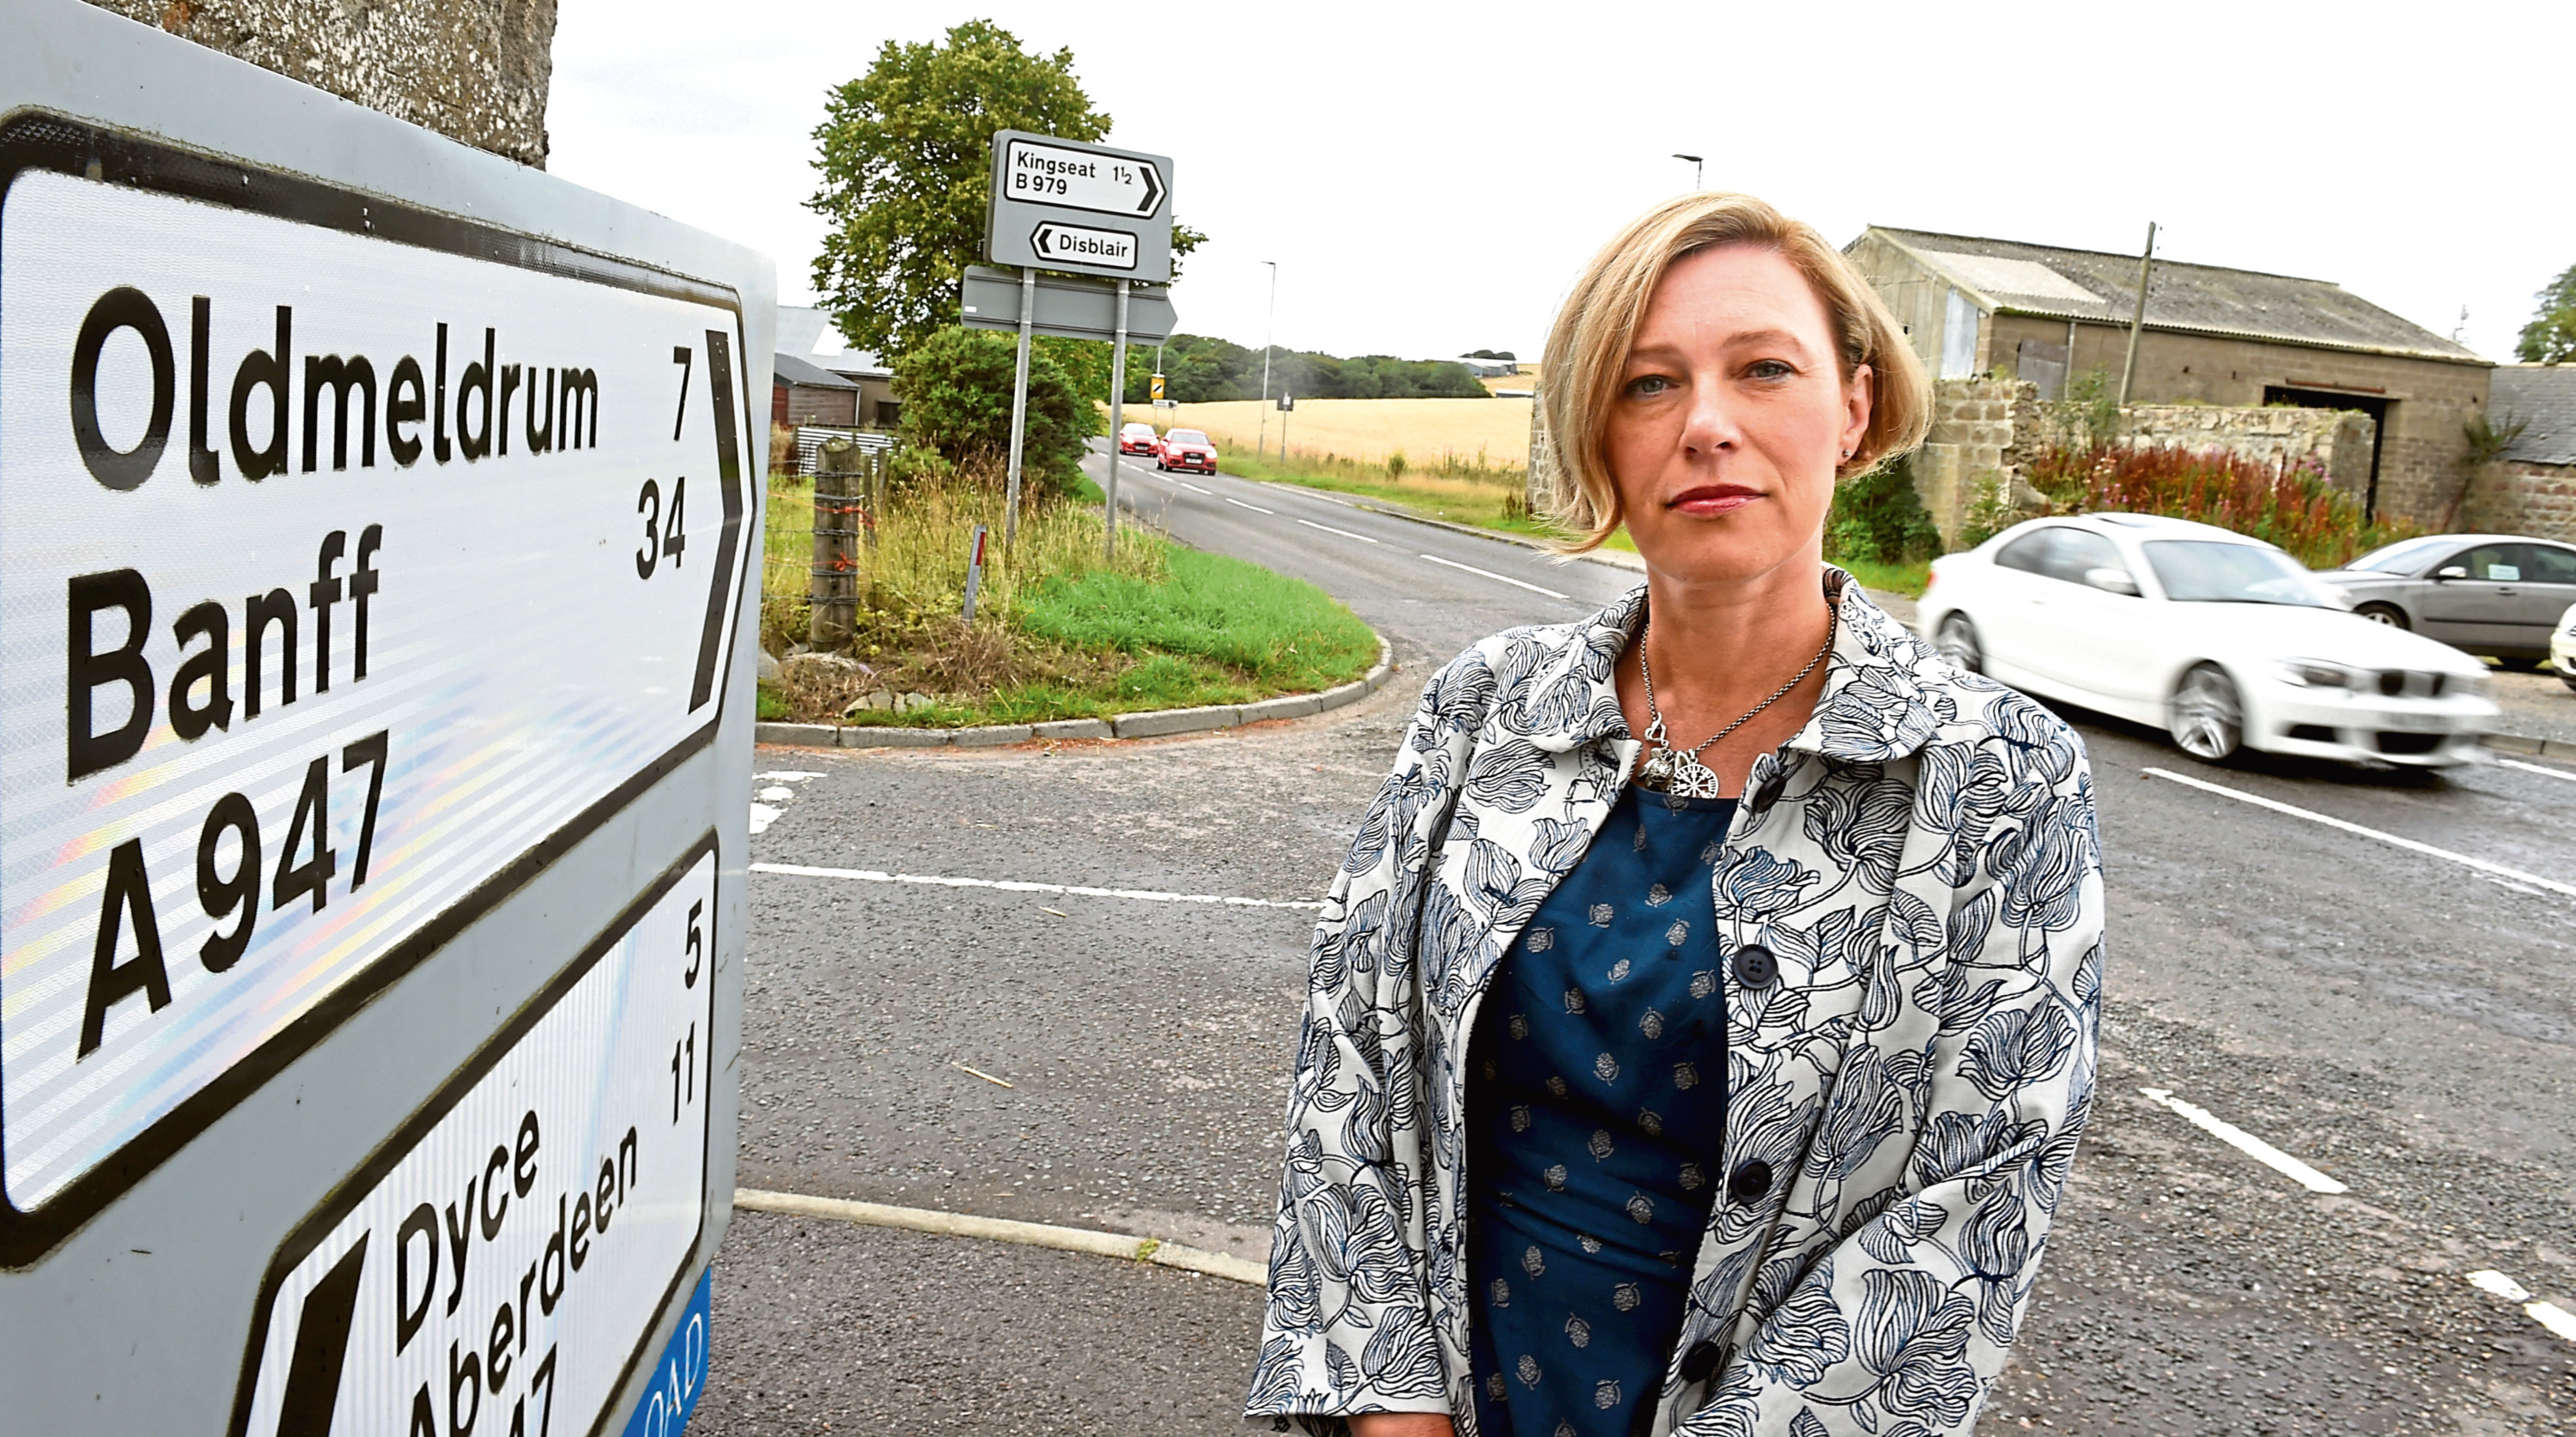 Aberdeenshire East MSP Gillian Martin backed the funding boost